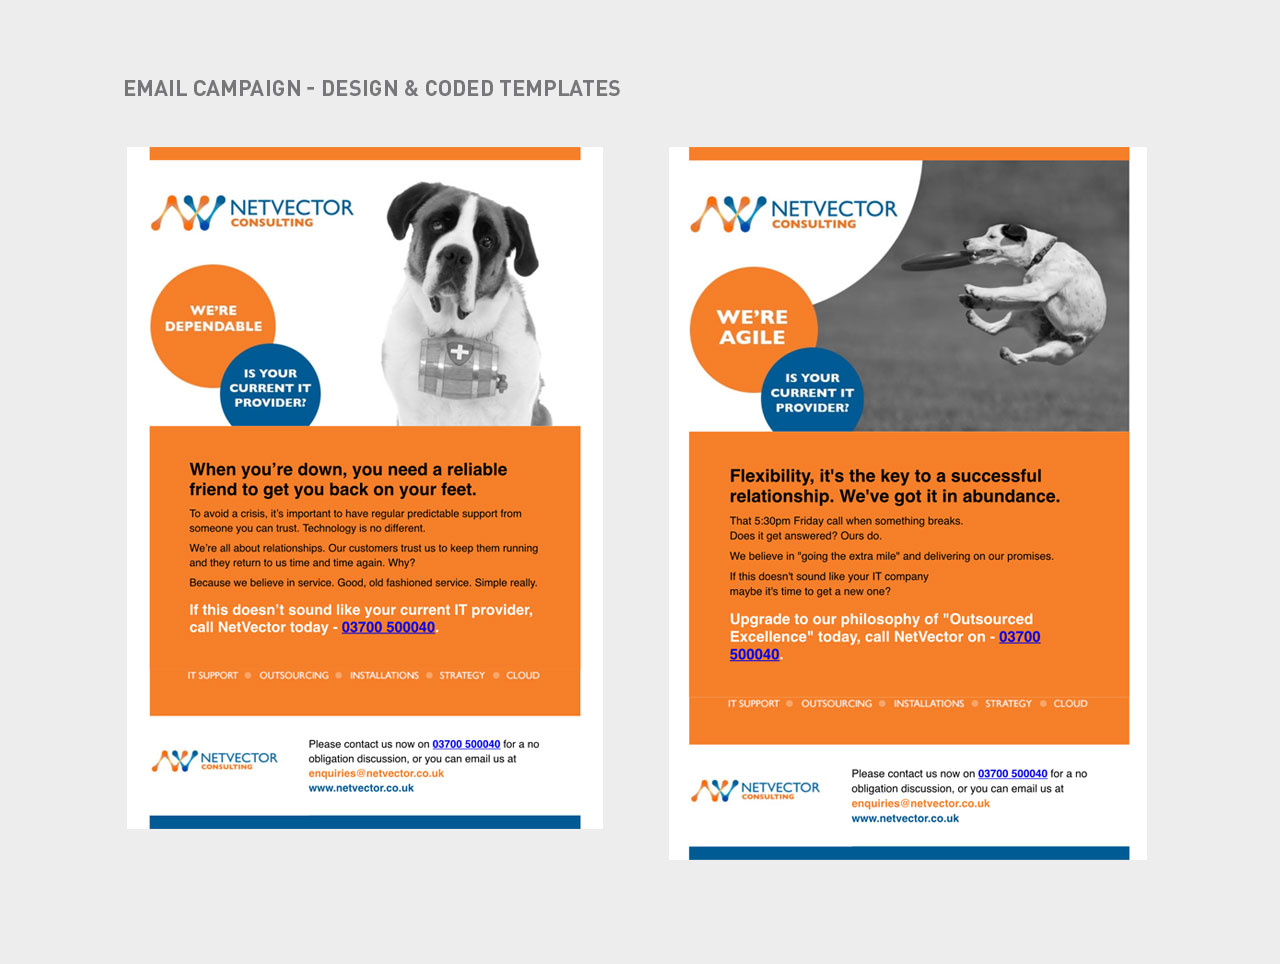 email campaign design templates